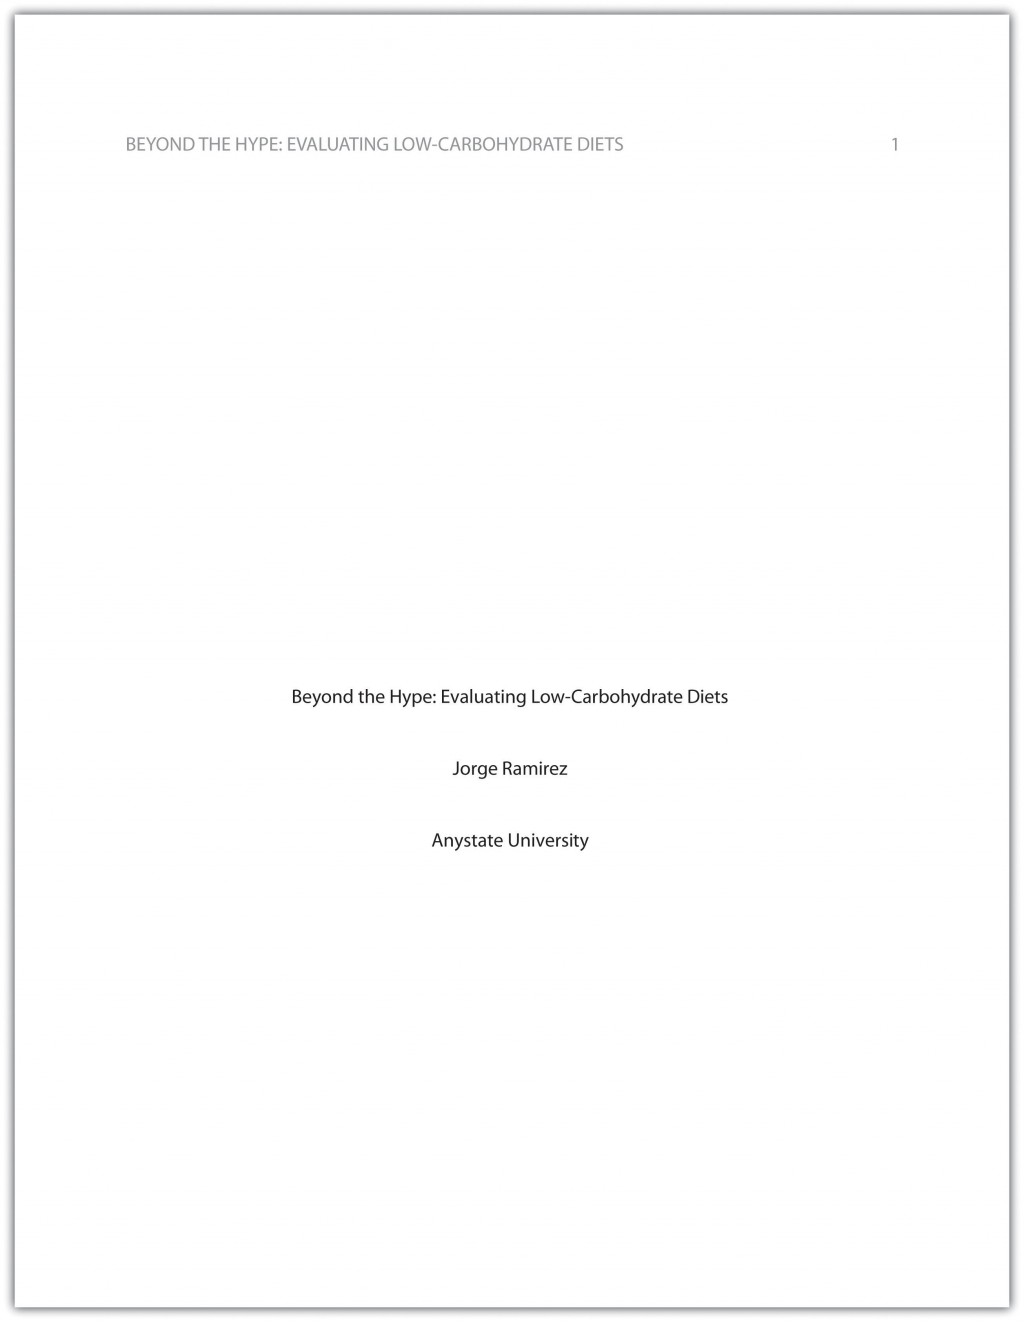 001 Research Paper Apa Style Cover Astounding Page Abstract Title Large